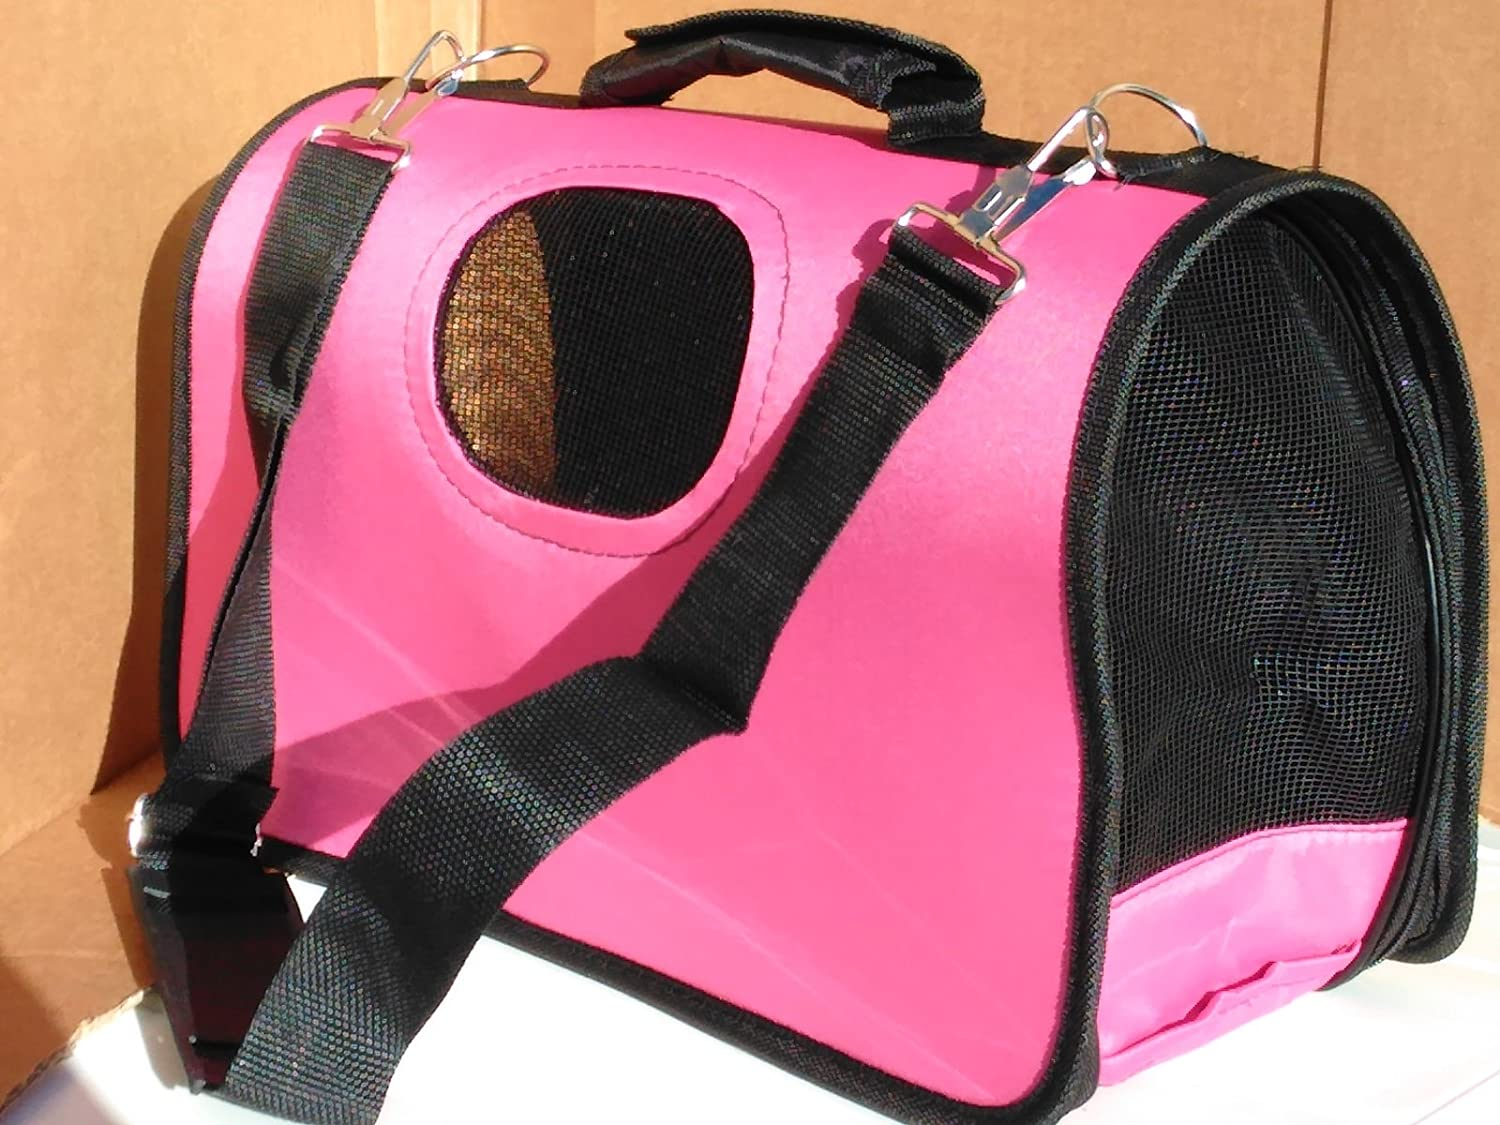 Ooh-La-La Pet Carry Bags - Water Resistant and Breatheable Fabric, Pink Colour (Small) Anzai Pets